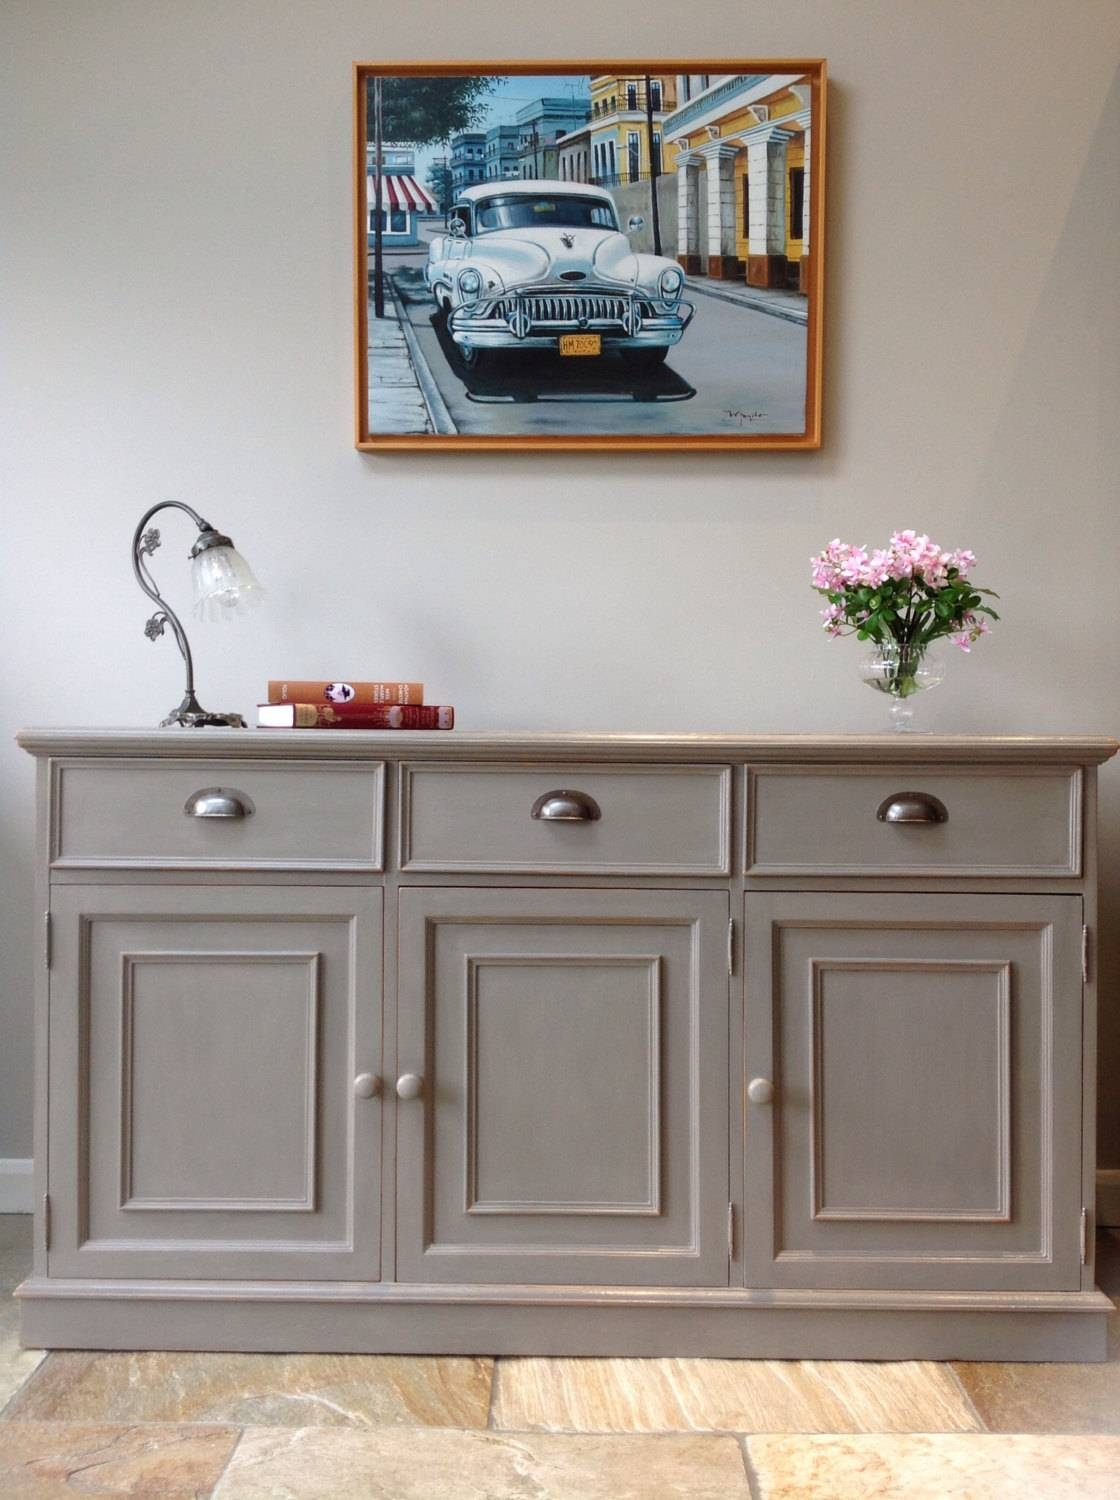 The Importance Of Kitchen Sideboard | Wood Furniture Inside Kitchen Sideboards (View 11 of 15)